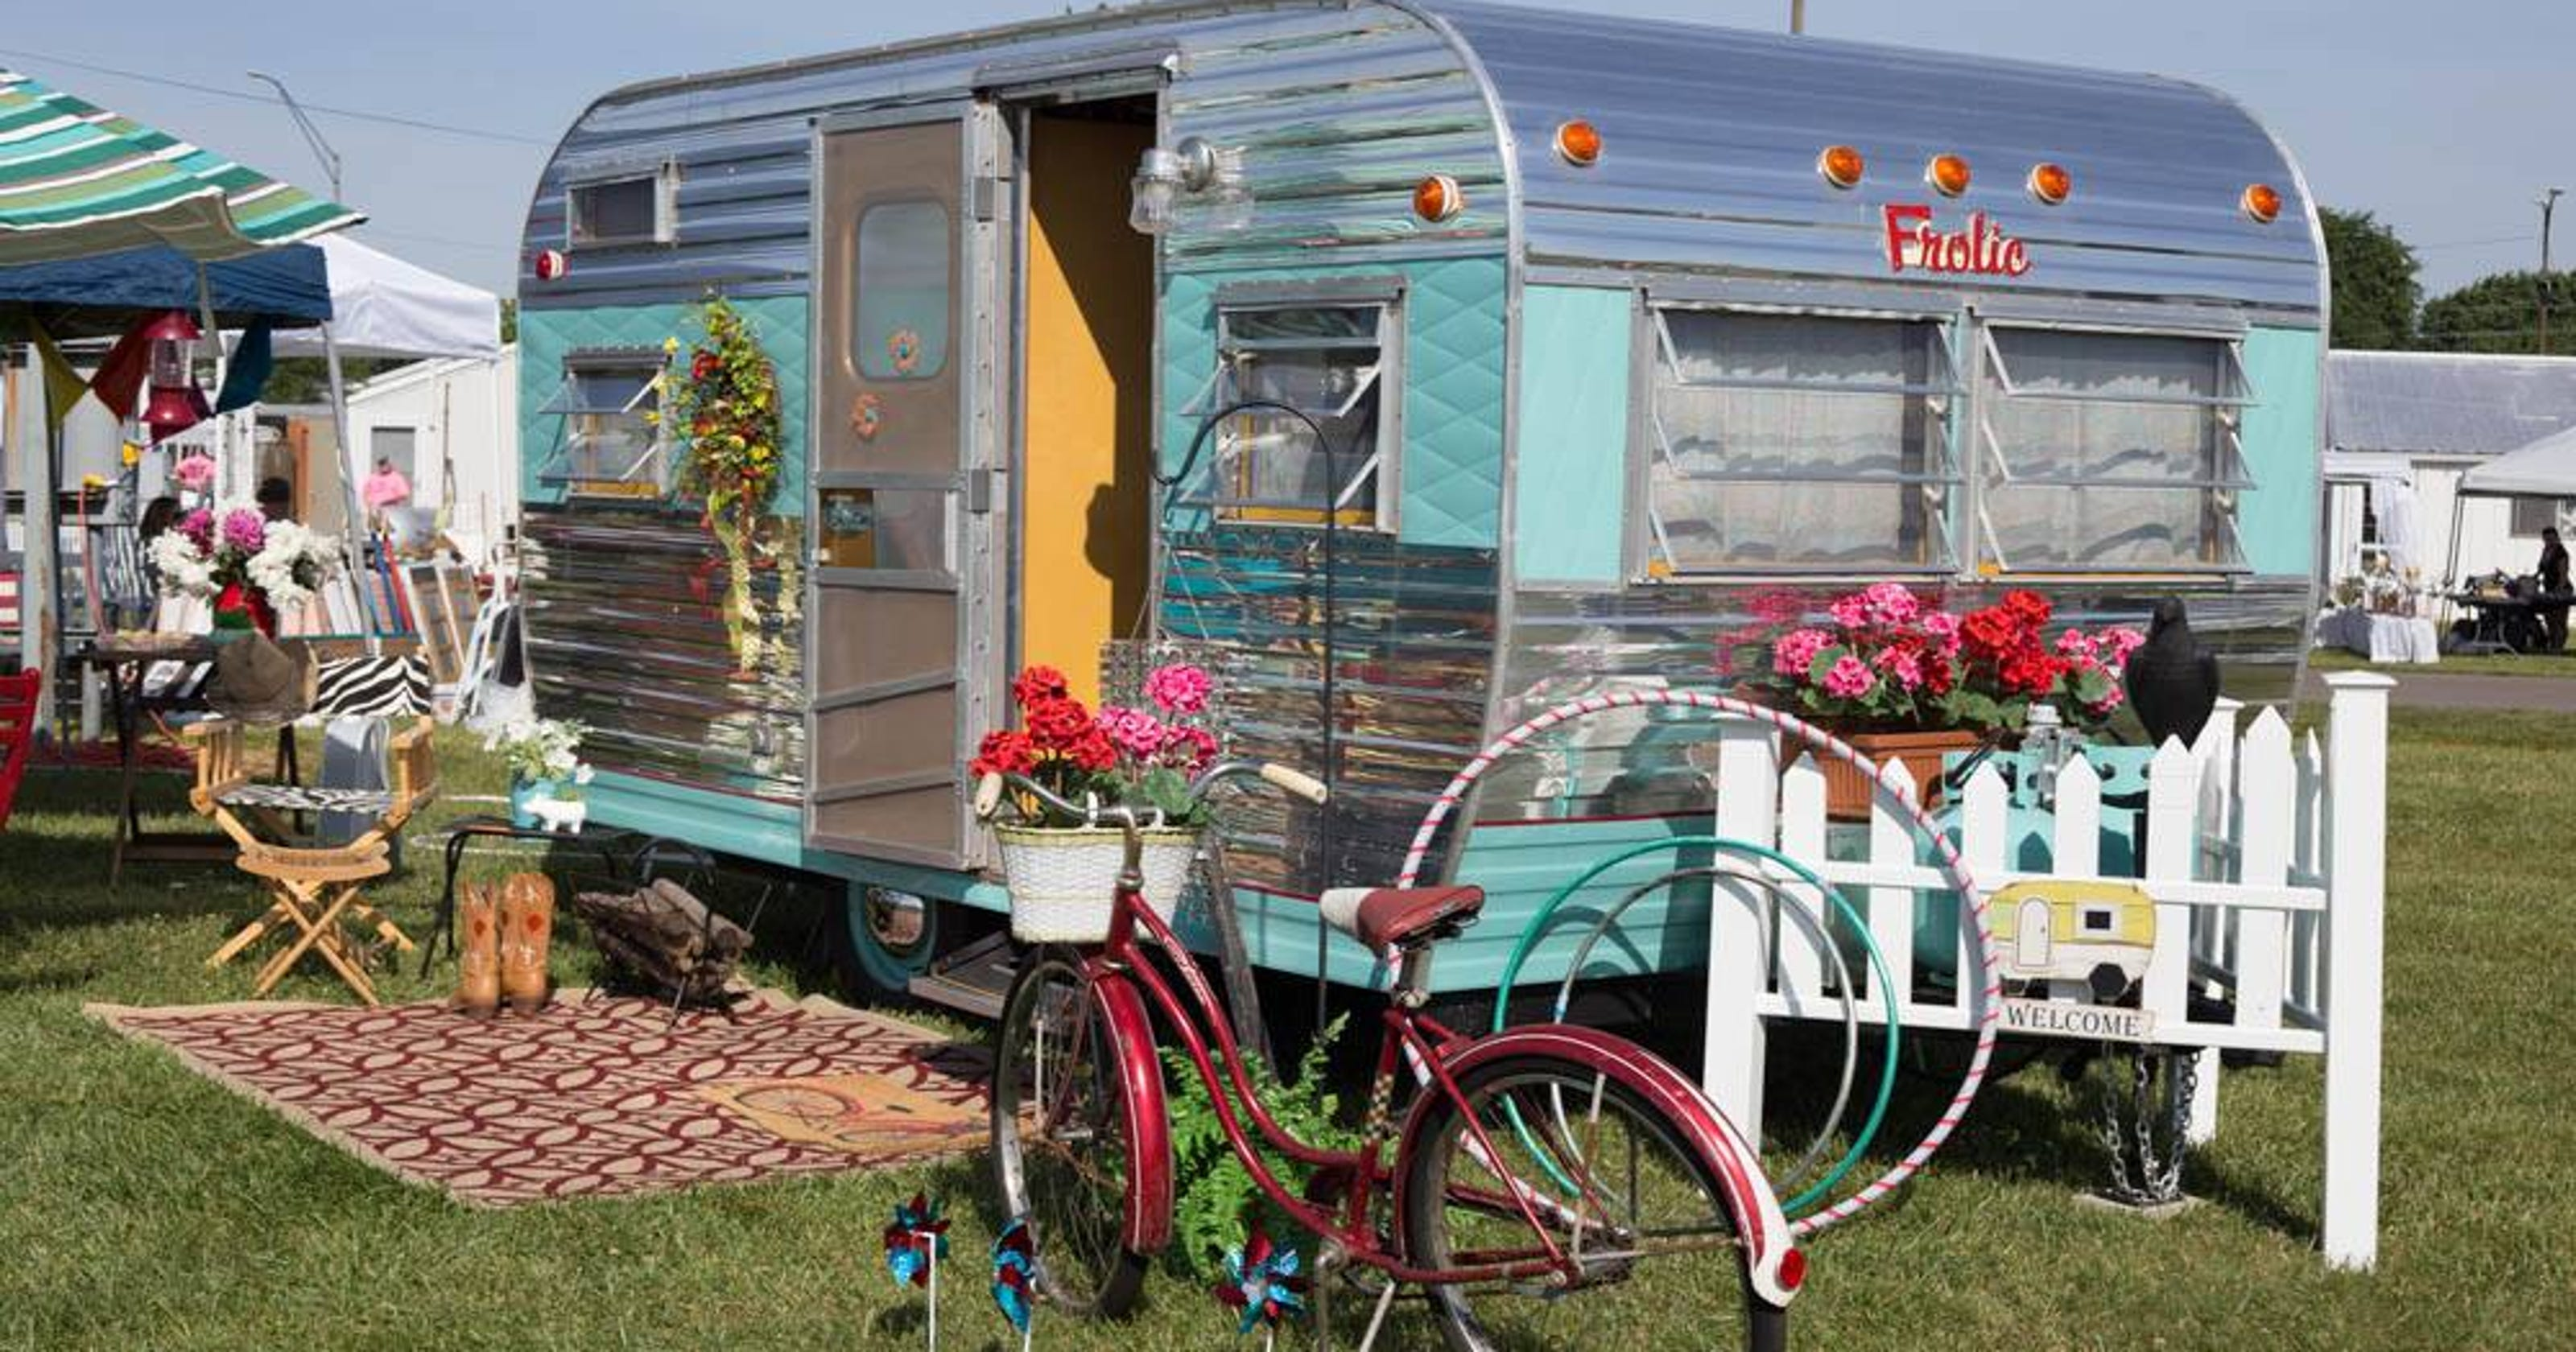 Vintage Campers Perfect For Summer Road Trips In Style